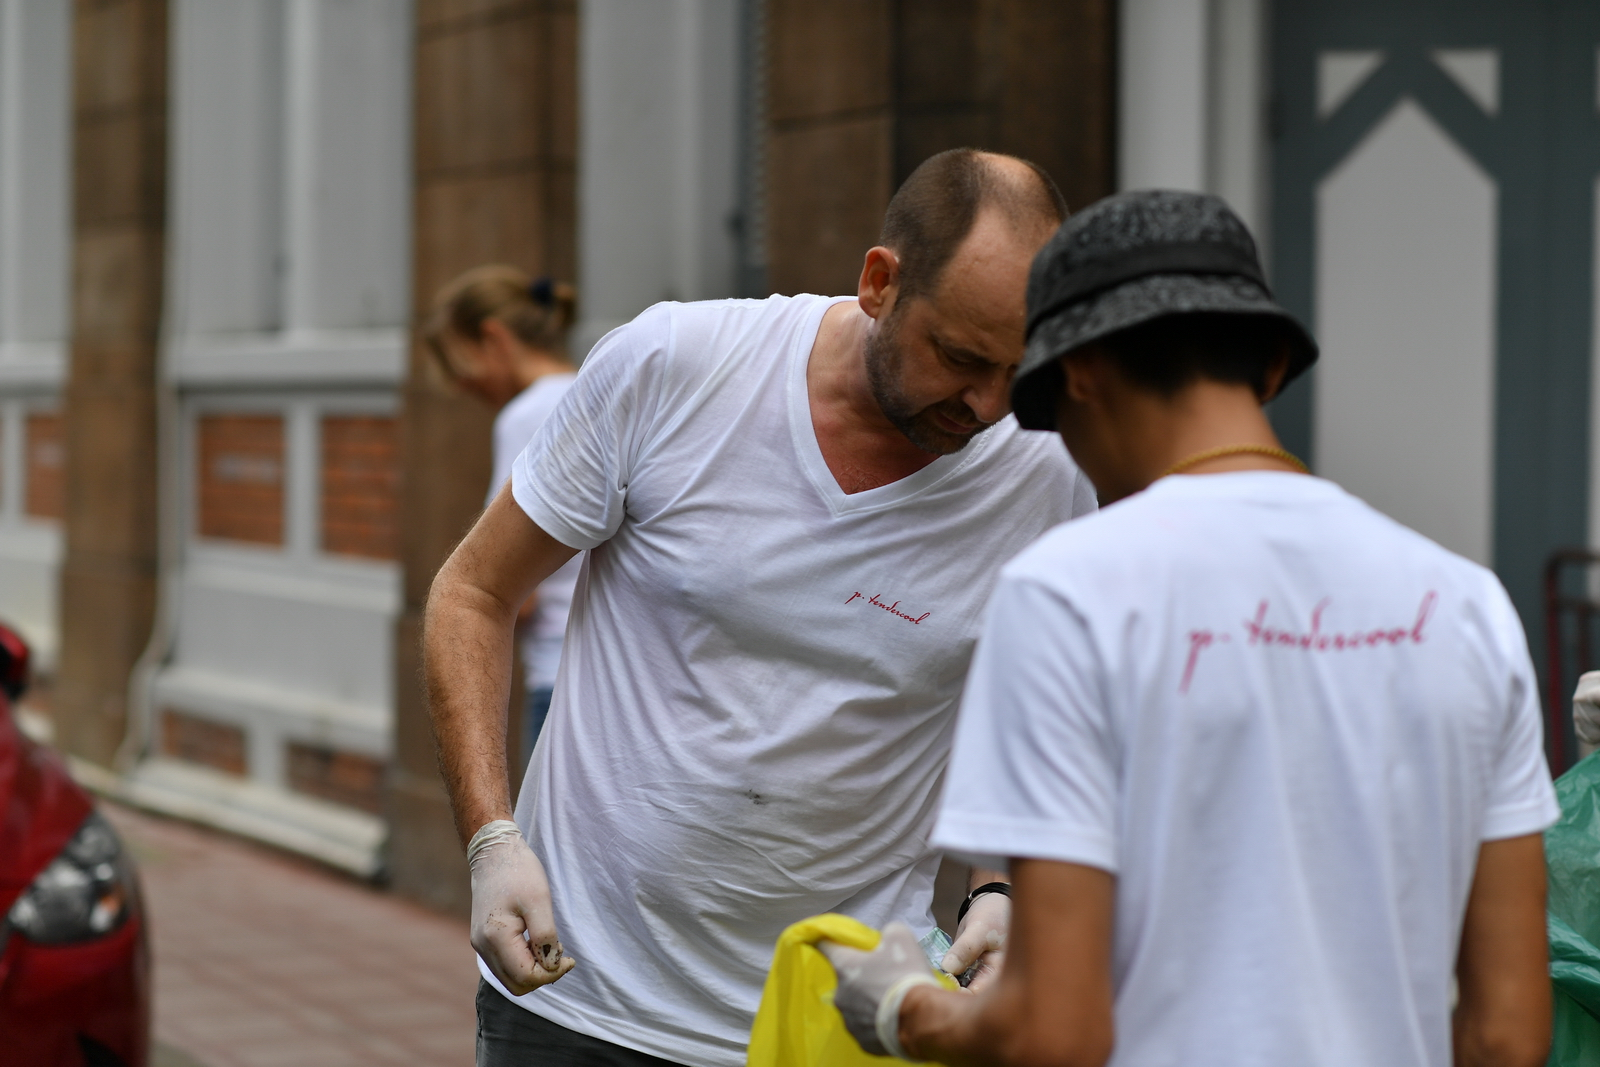 PTendercool-Event-Clean Up The World-190921-070